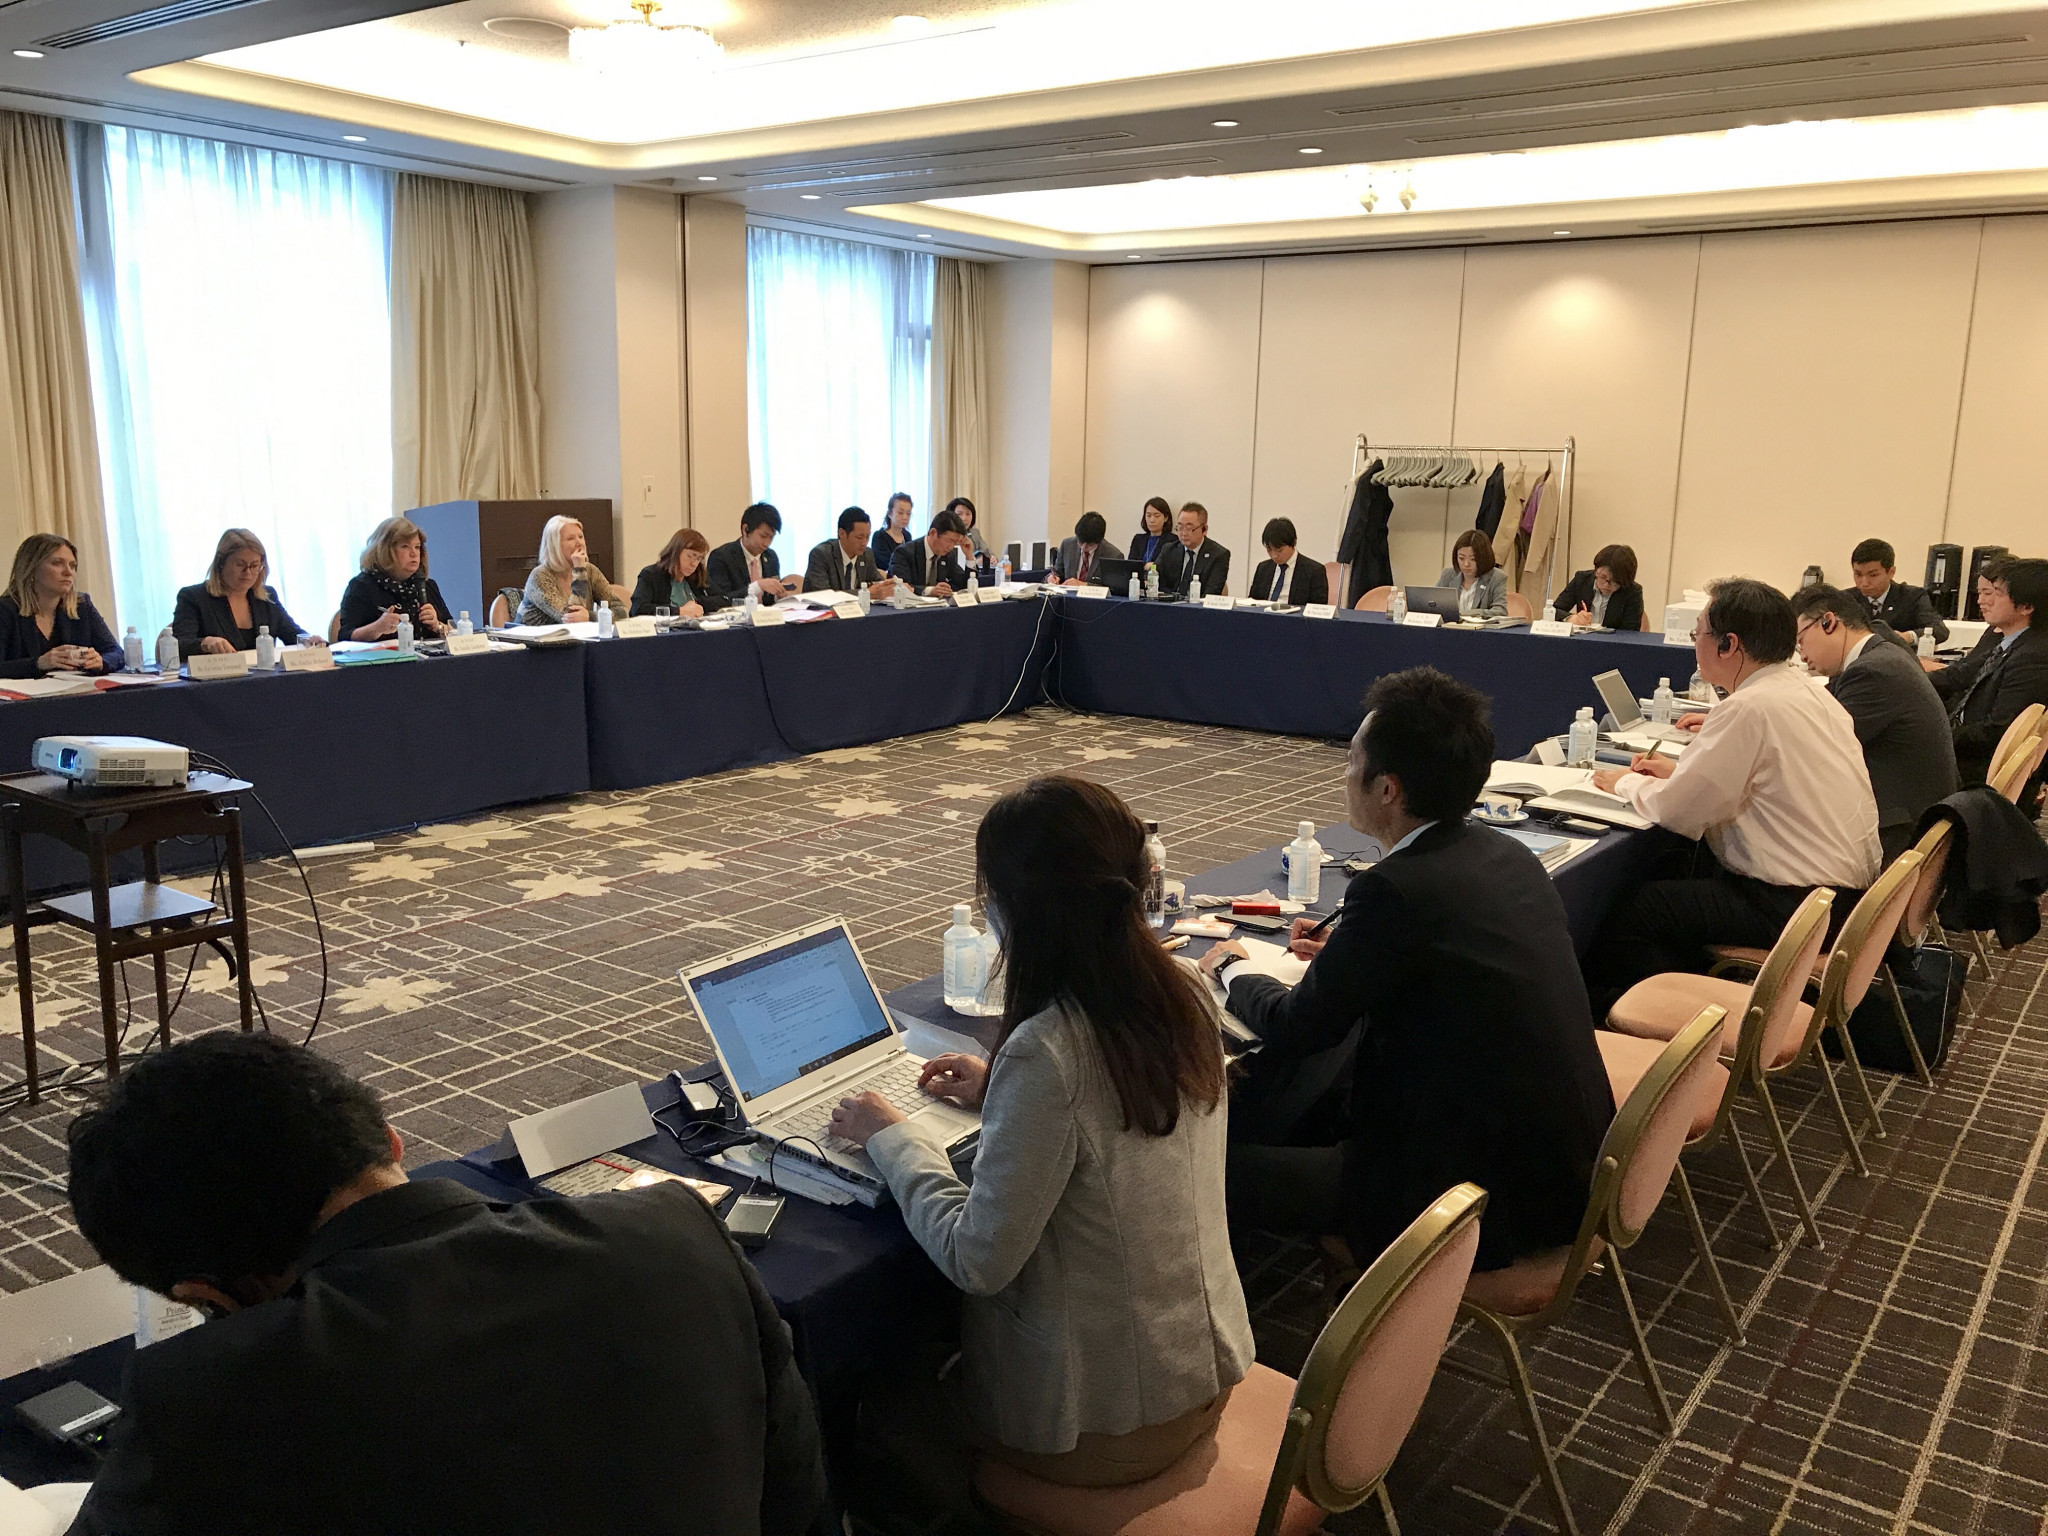 A site visit has taken place in Tokyo for the ANOC General Assembly ©ANOC